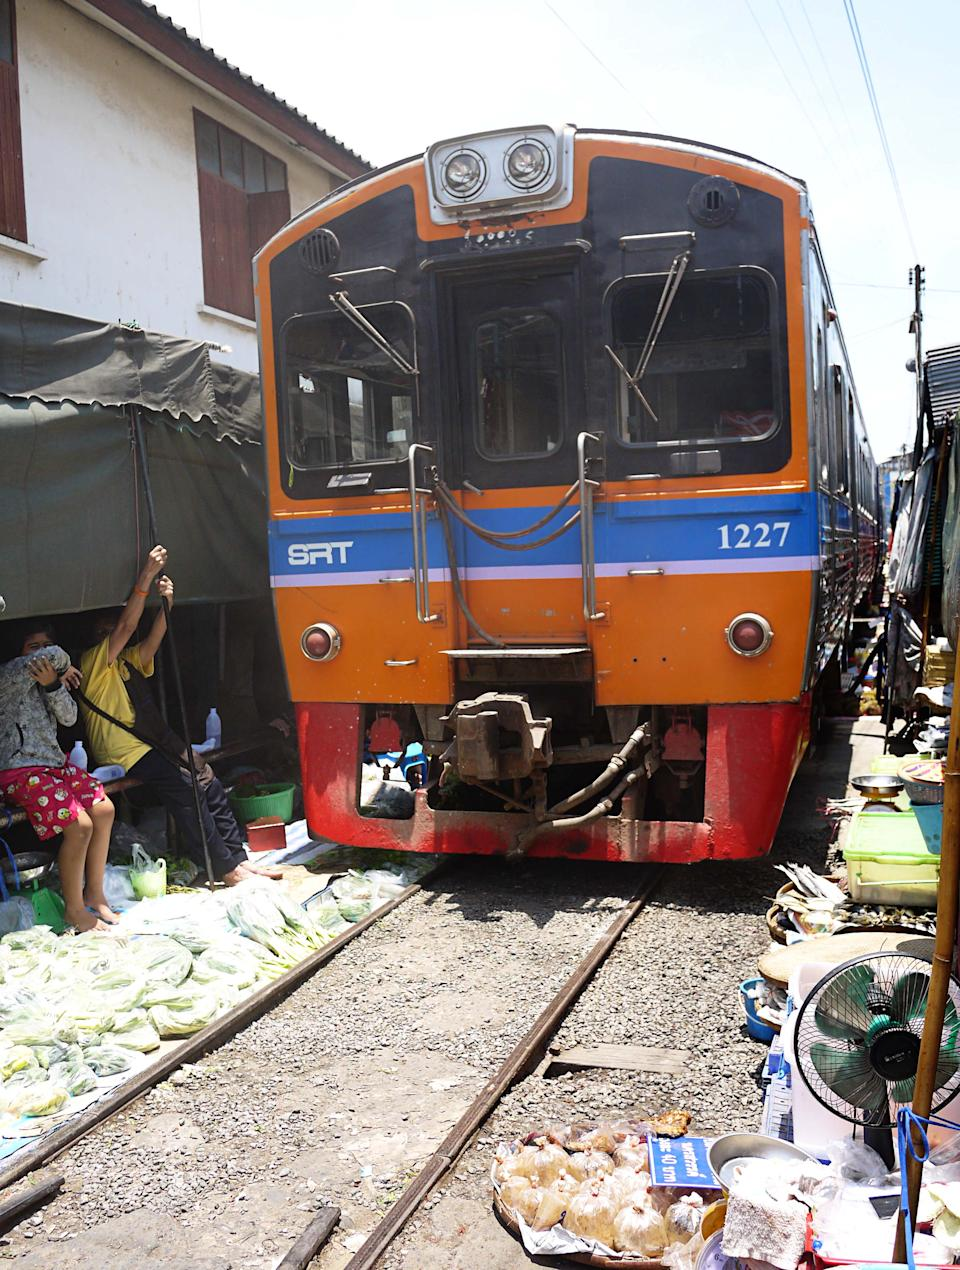 "<b>Maeklong railway market</b><br><br><p><b>A marketplace with a working railway track through it.</b></p><br><br><p>If you're driving from Bangkok to Hua Hin (which takes about 2.5 hours), make sure you schedule a stop in Maeklong Railway Market in Samut Songkhram, some 60km away from the capital. Locals call it Talad Rom Hoop Market, which translates to ""Market Umbrella Pulldown"" but tourists call it Scary Market (read on to find out why). At first glance, it looks like any typical open-air market in Thailand. The market is filled with stalls displaying juicy fruits, fresh vegetables, a variety of spices, herbs, seafood and plenty more. </p>"